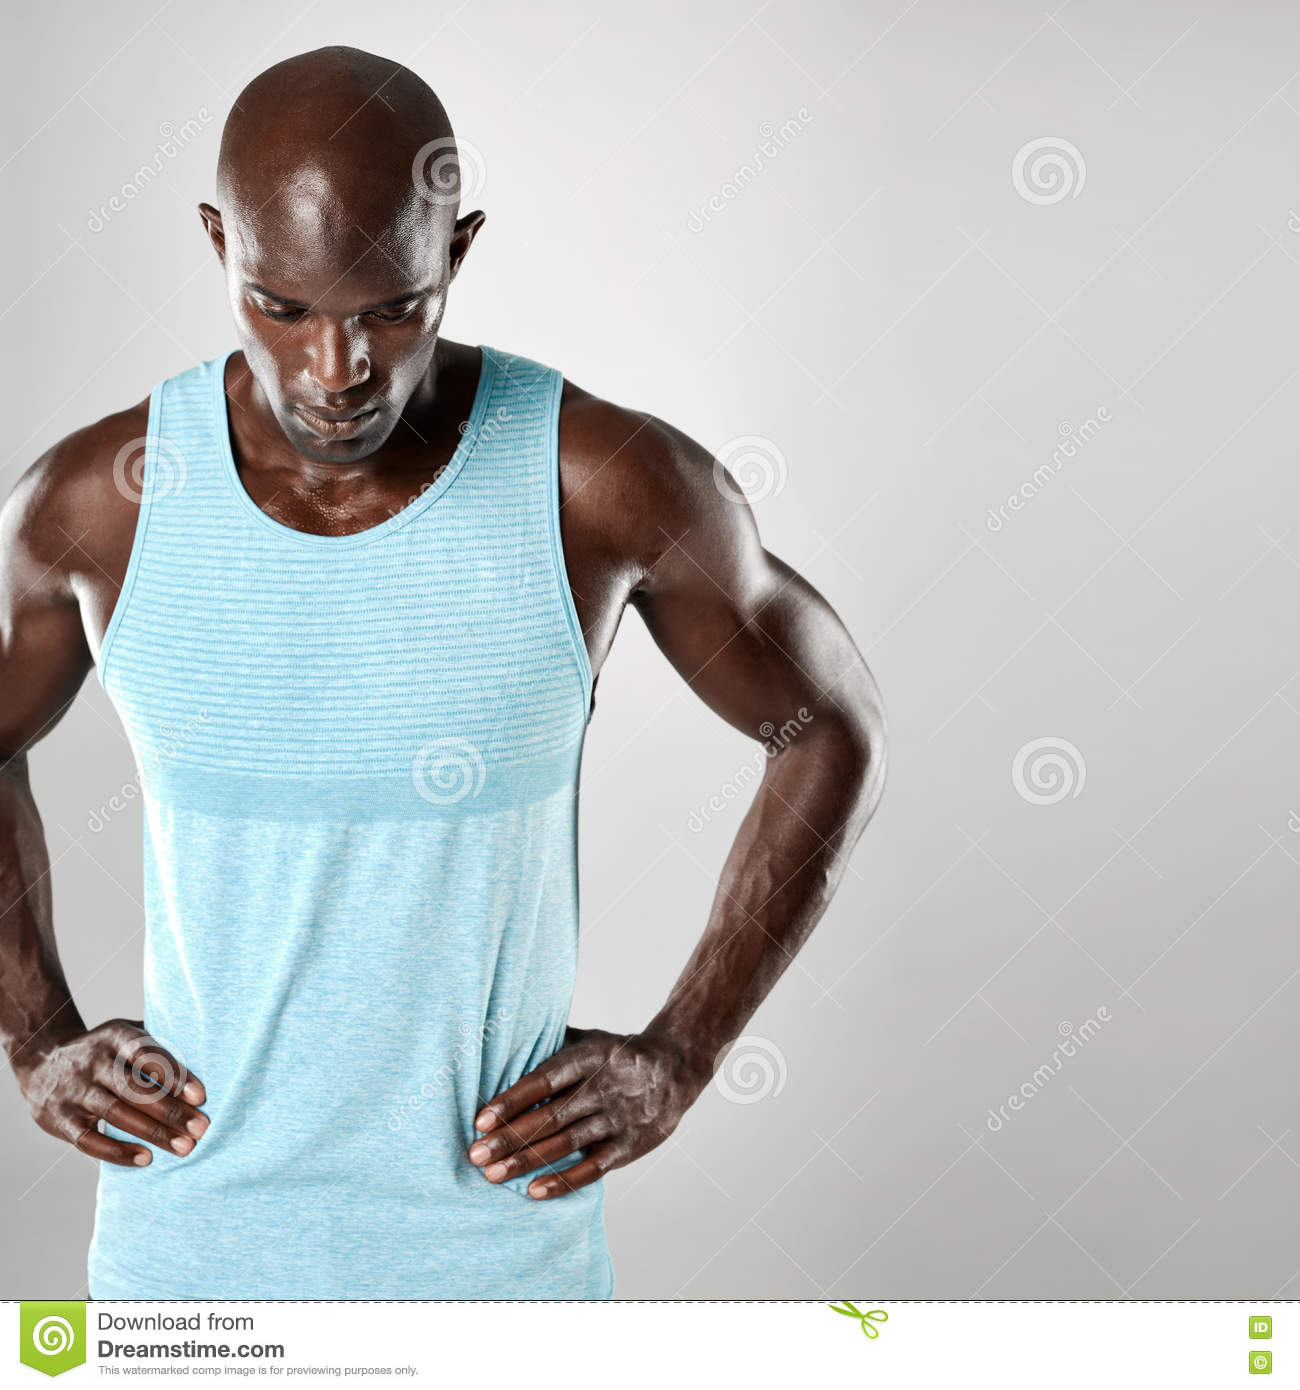 African Man With Bald Head And Muscular Arms Stock Photo Image Of